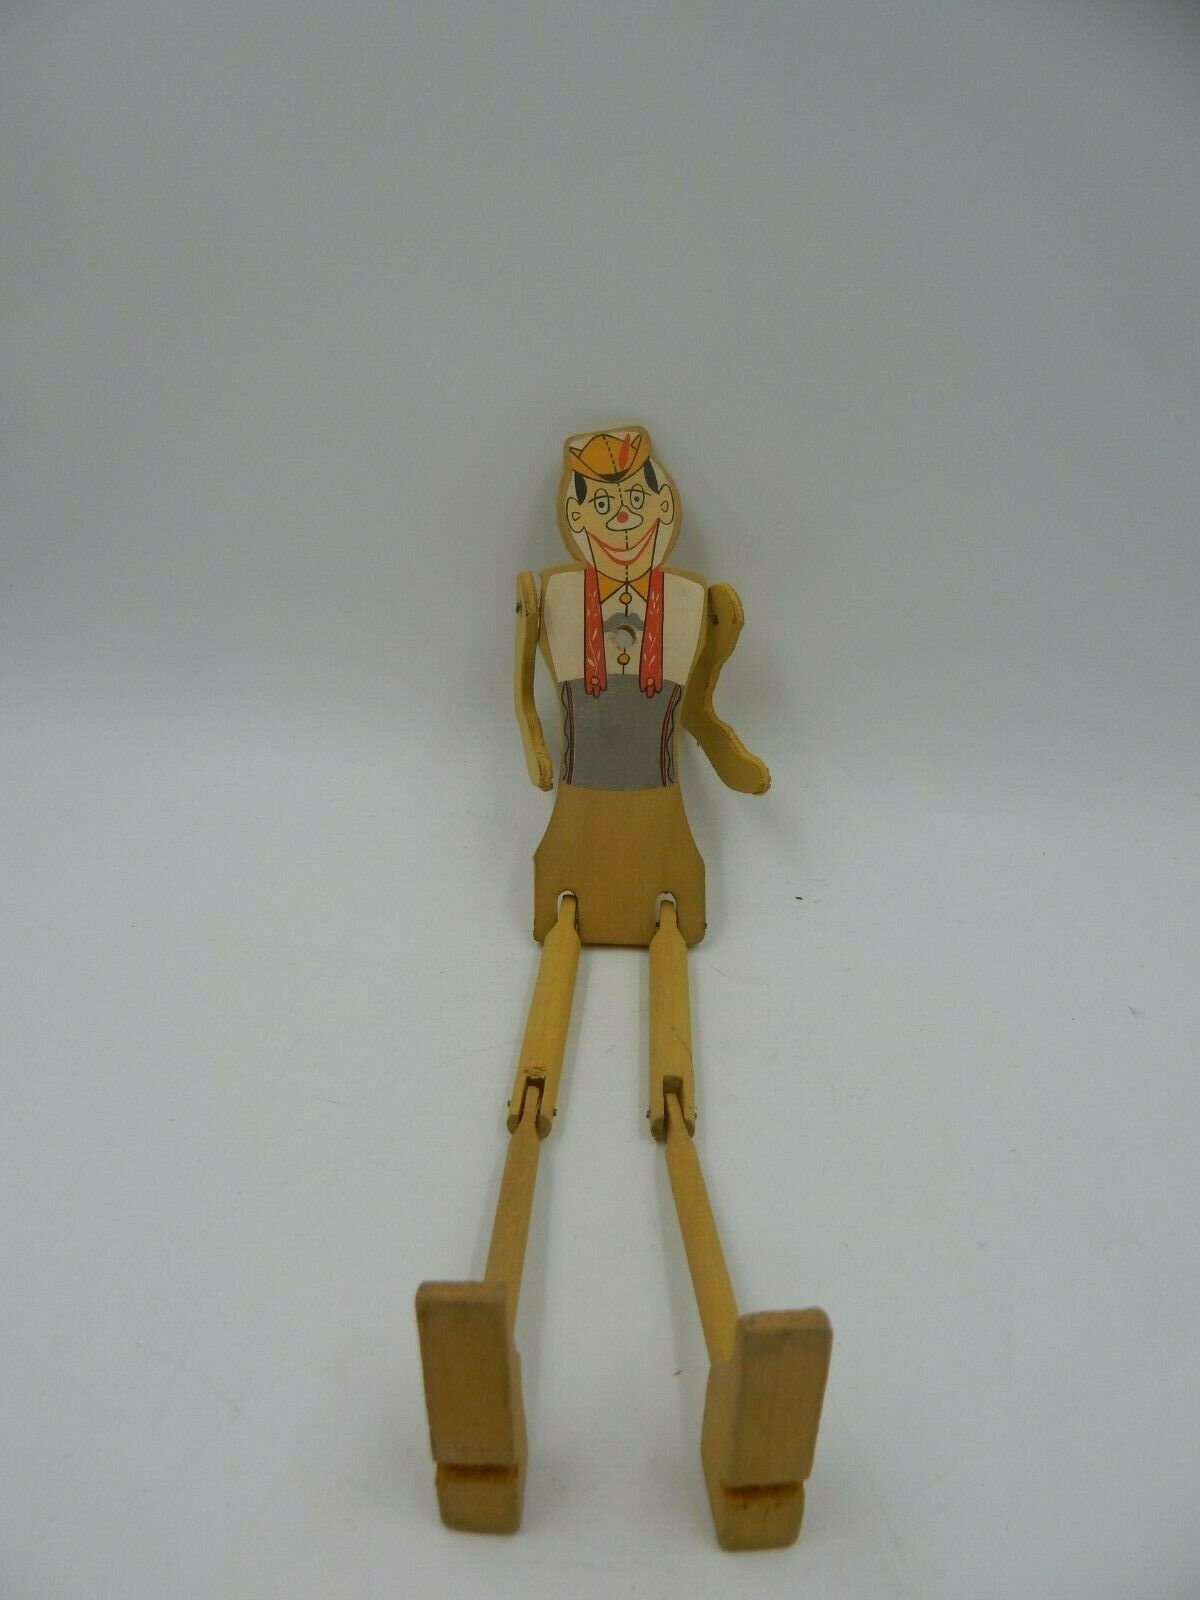 Vintage Wooden Marionette Puppet Toy